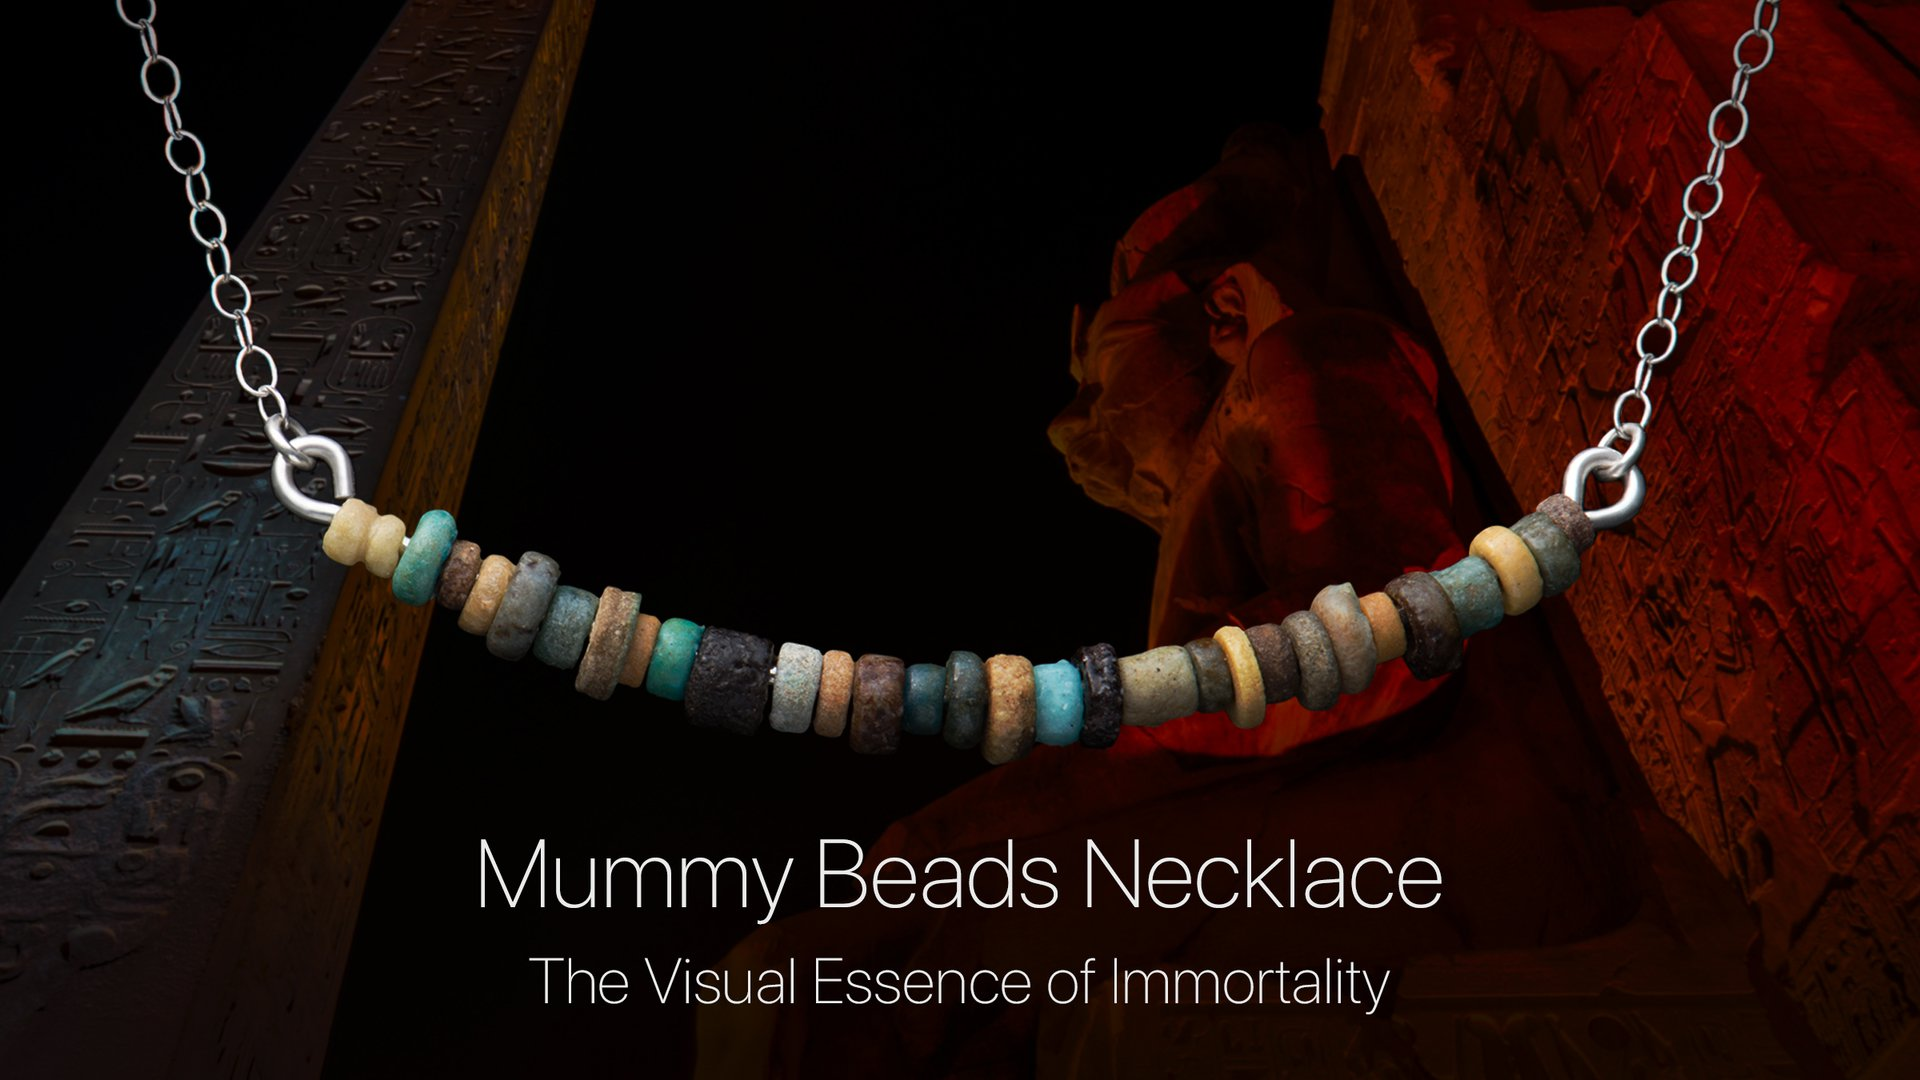 Details aboutthe Mummy Beads Necklace